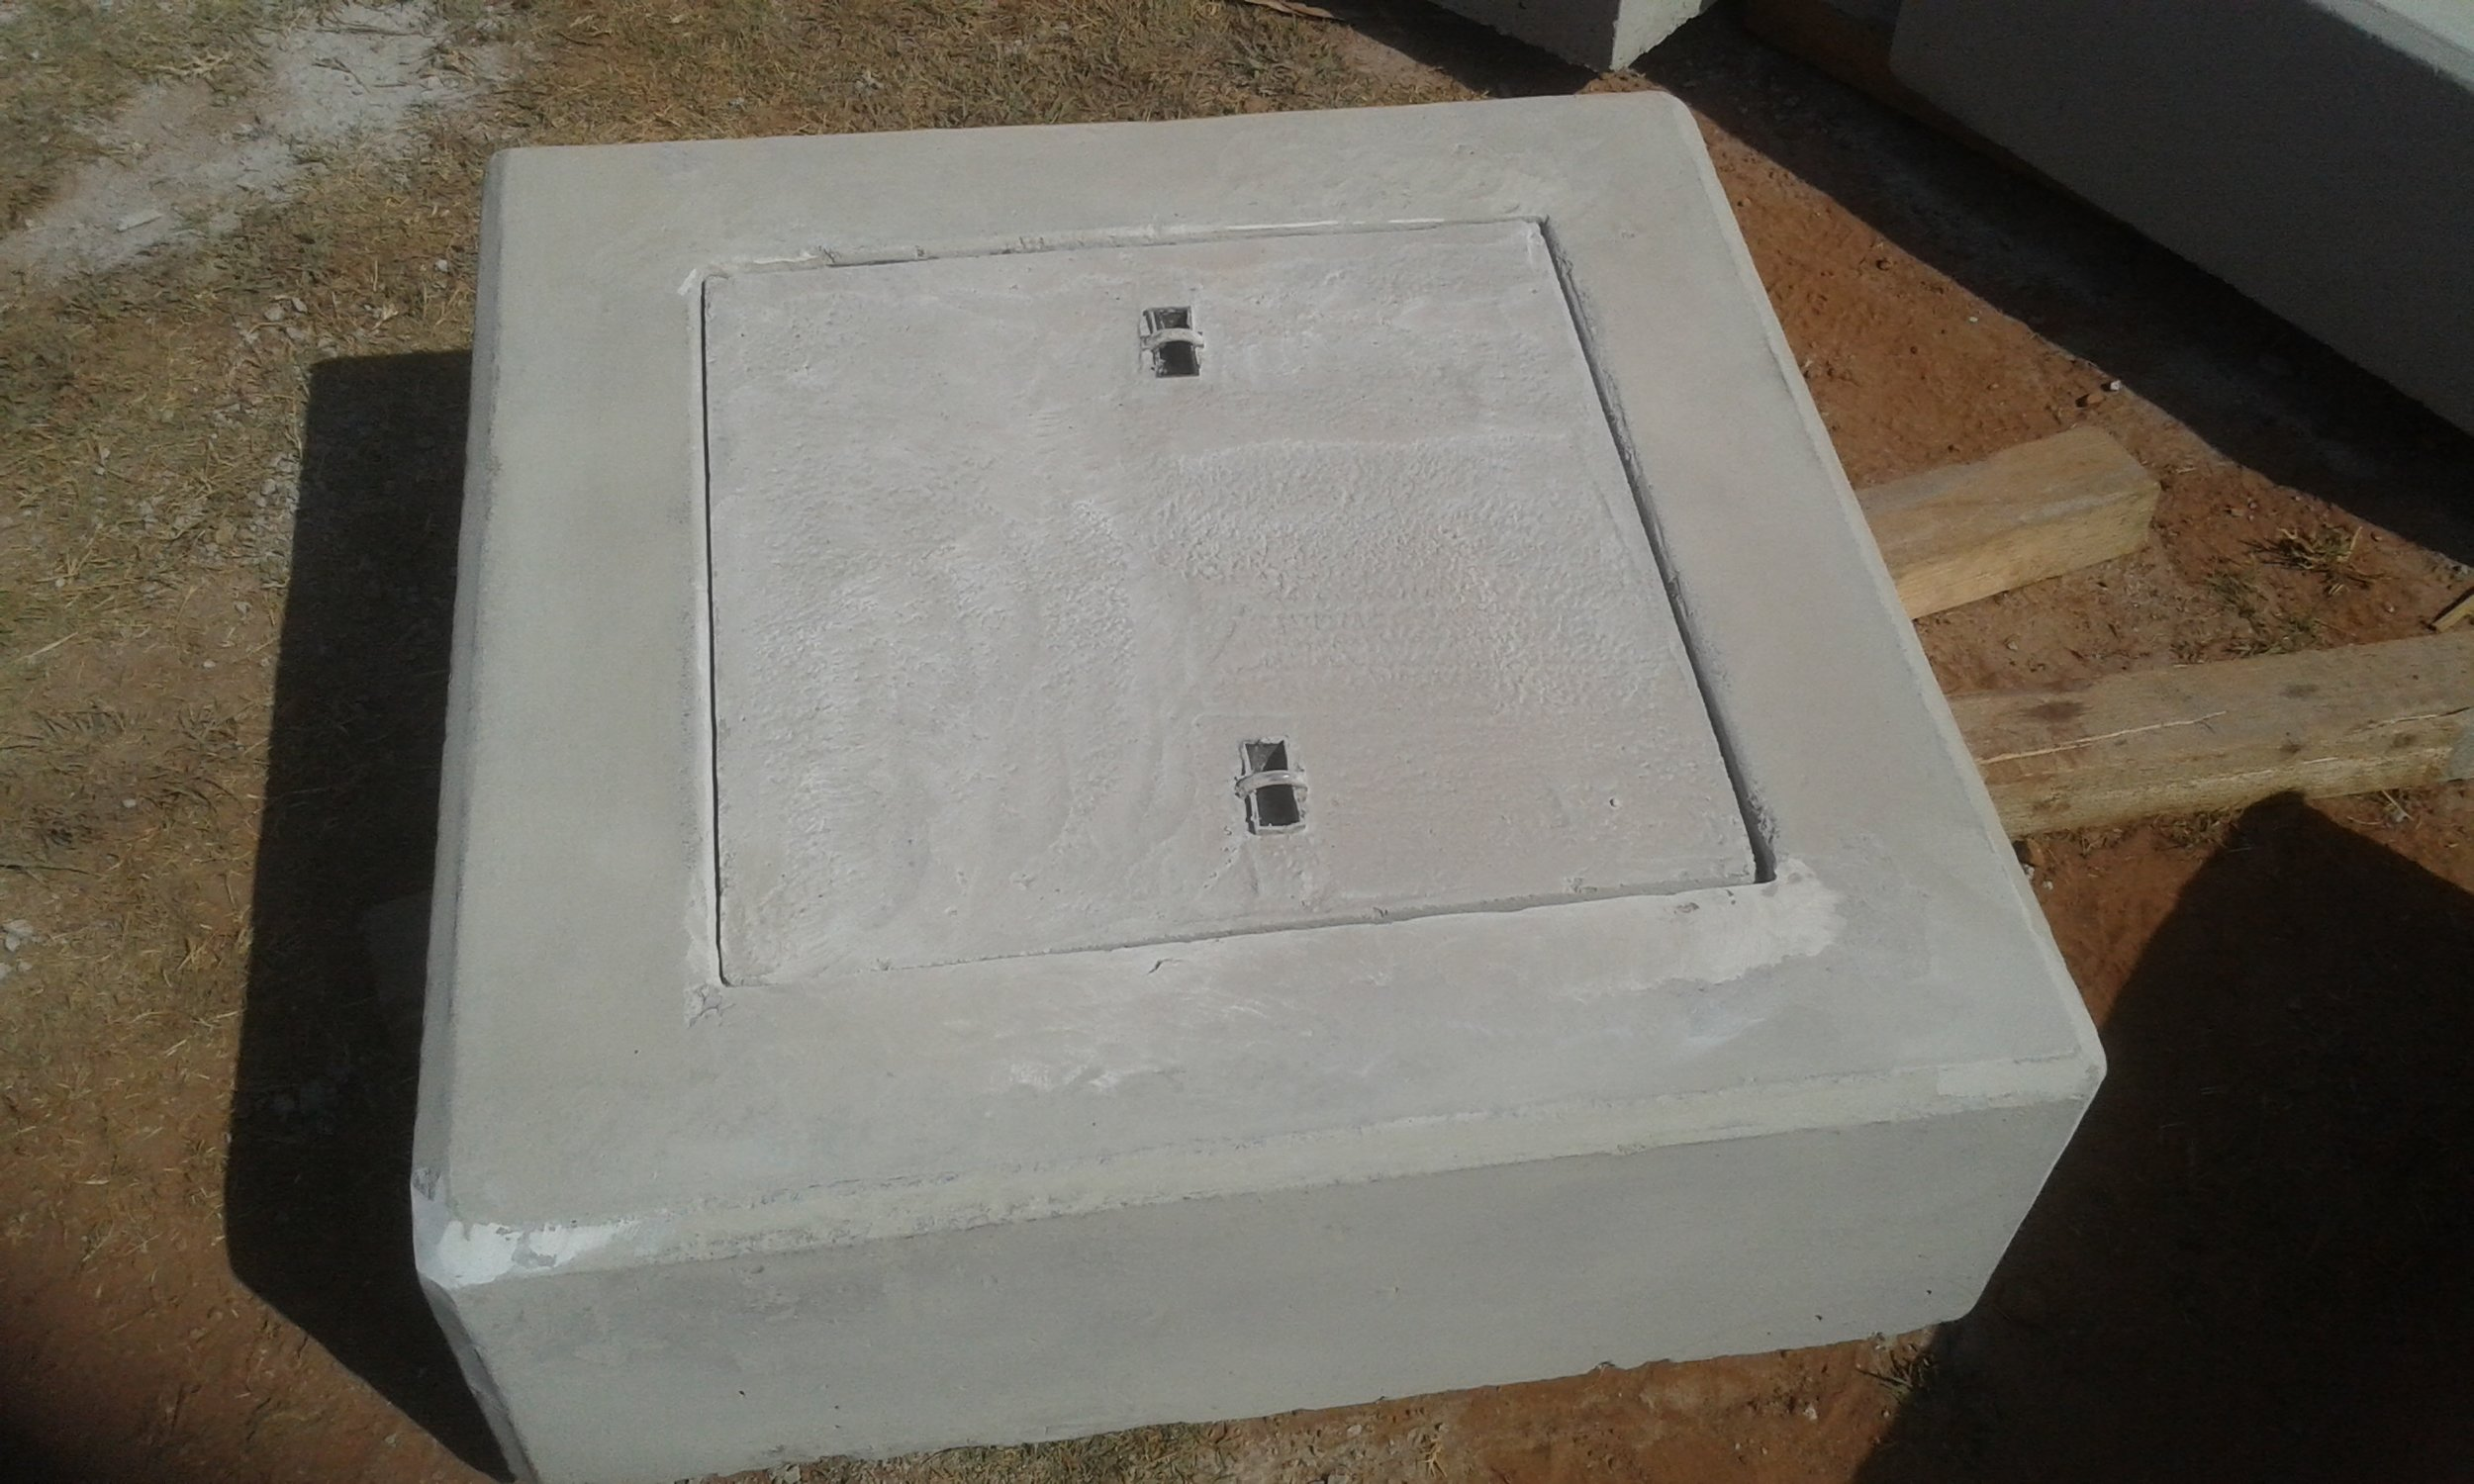 Subsoil Cleaning Eye 915 x 915 x 300 with 600 x 600 lid